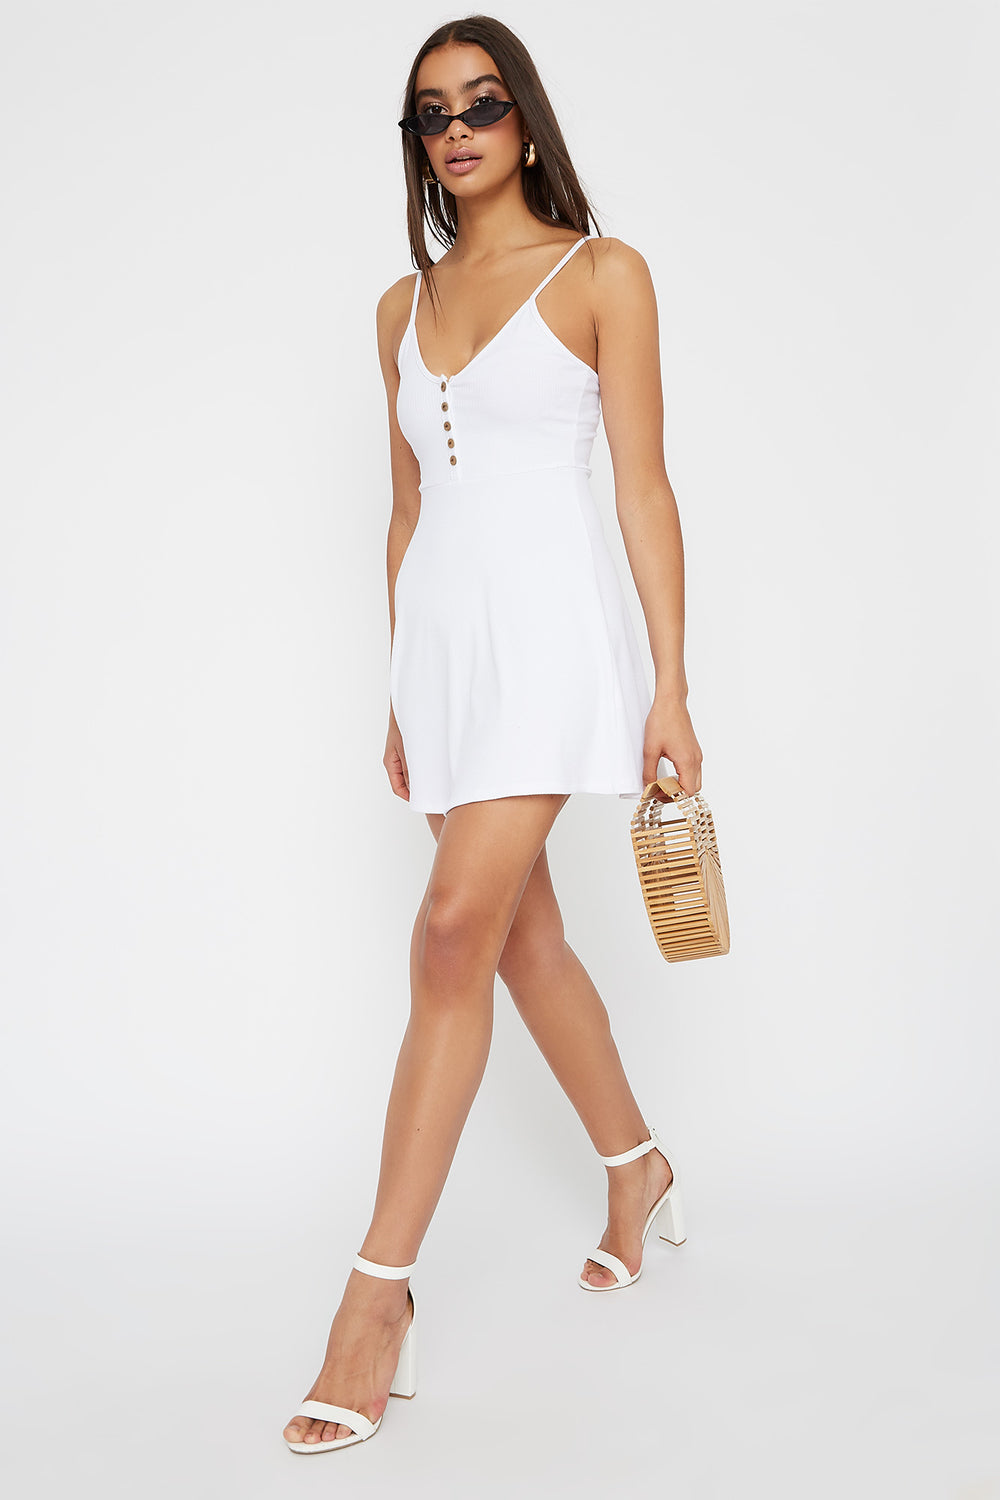 Women Dresses Ribbed V-Neck Button Sleeveless Skater Dress White